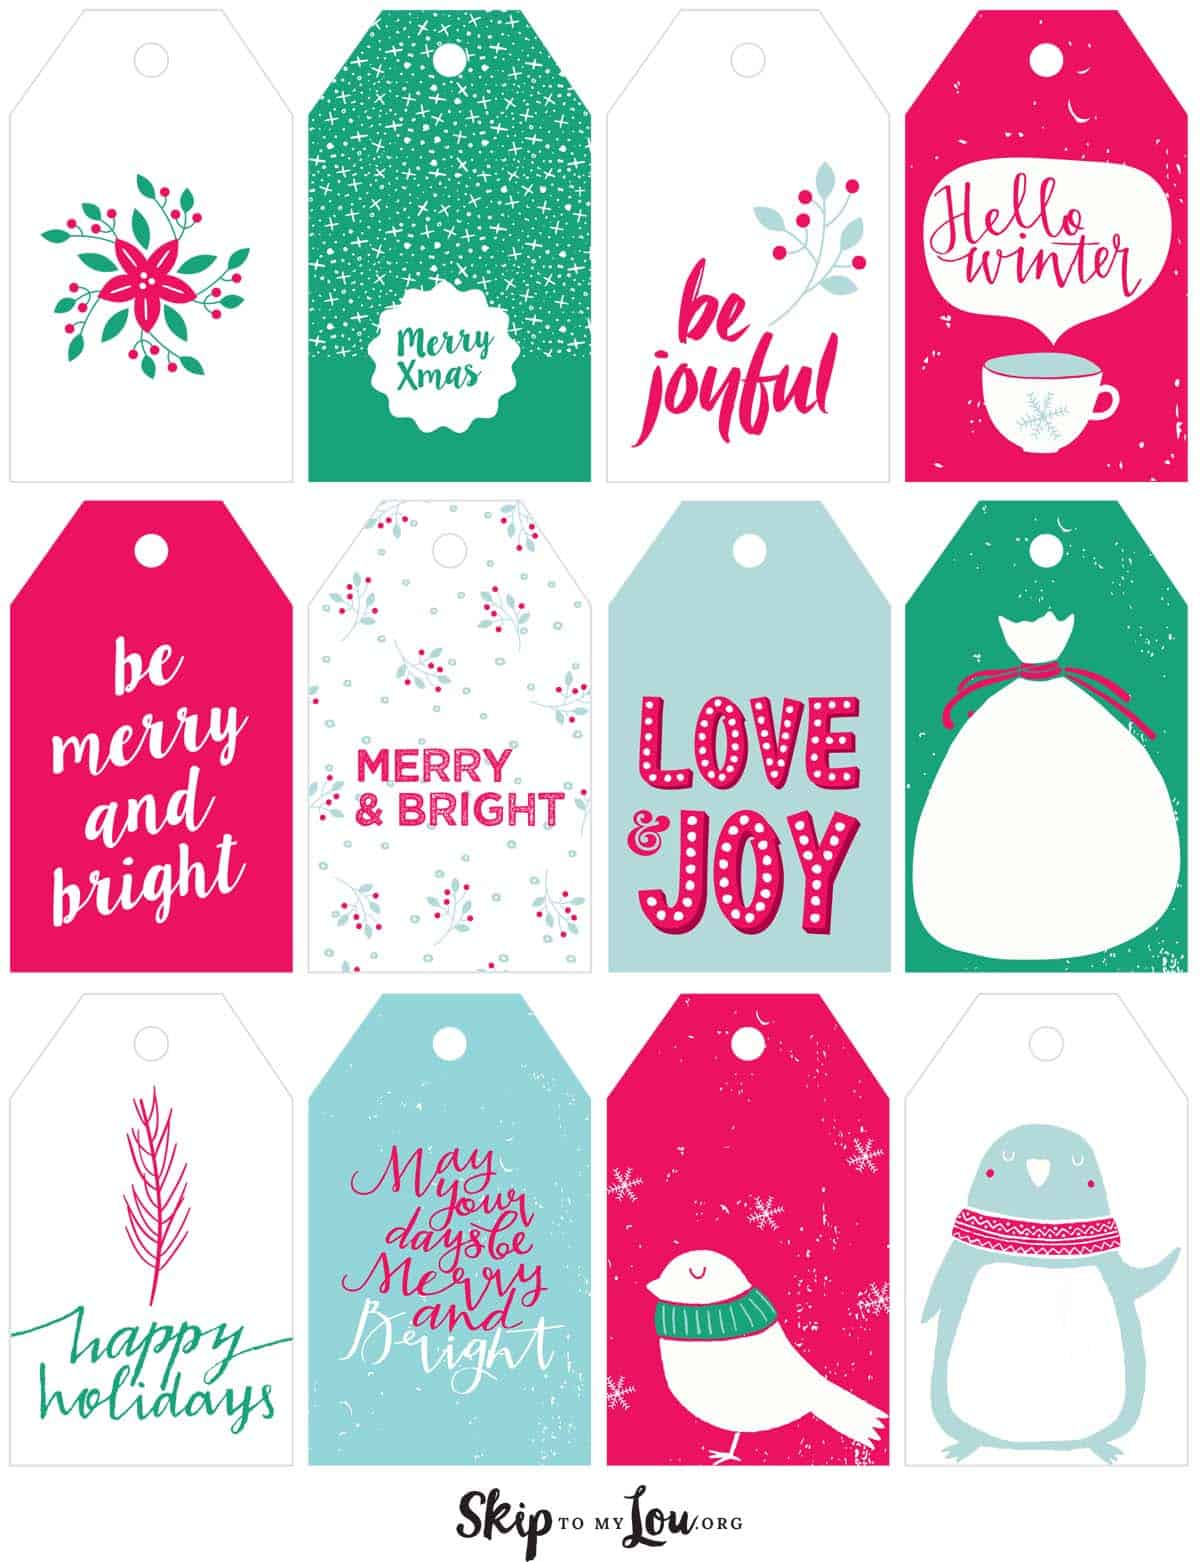 graphic relating to Free Printable Santa Gift Tags identify Printable Xmas Reward Tags Miss out on In the direction of My Lou